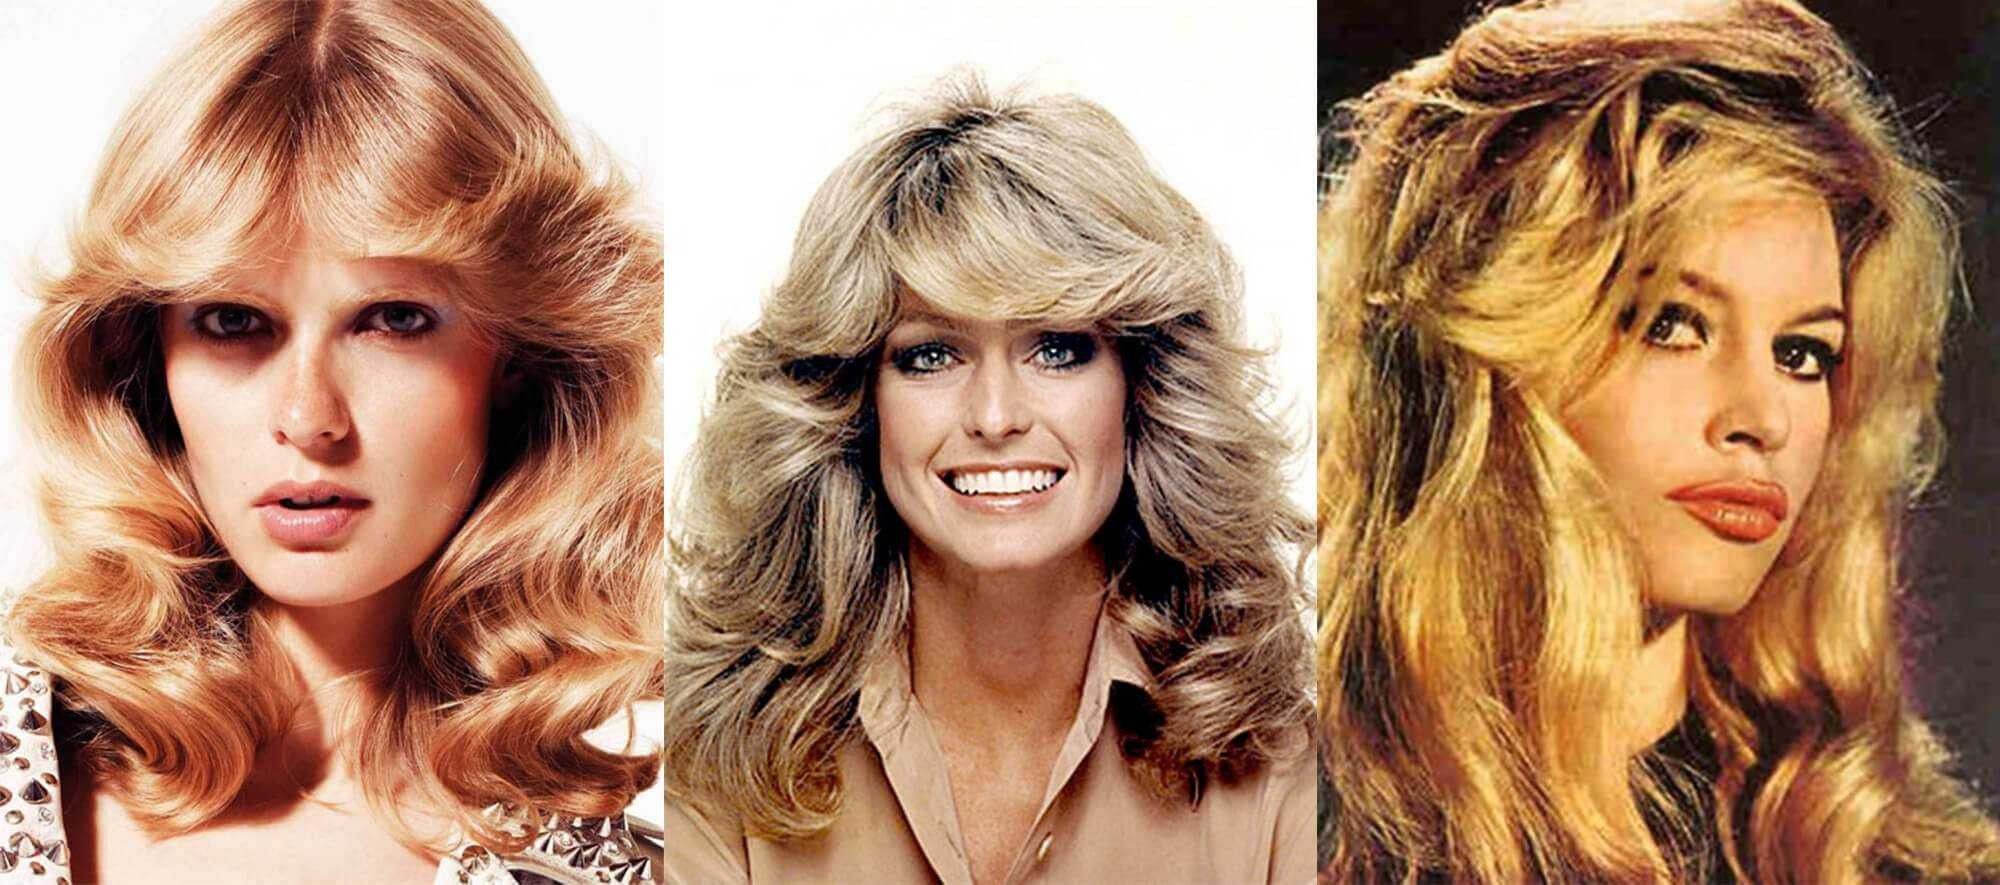 96 Inspirational This '70s Hairstyle Trend is Blowing Up In Hollywood #70shair